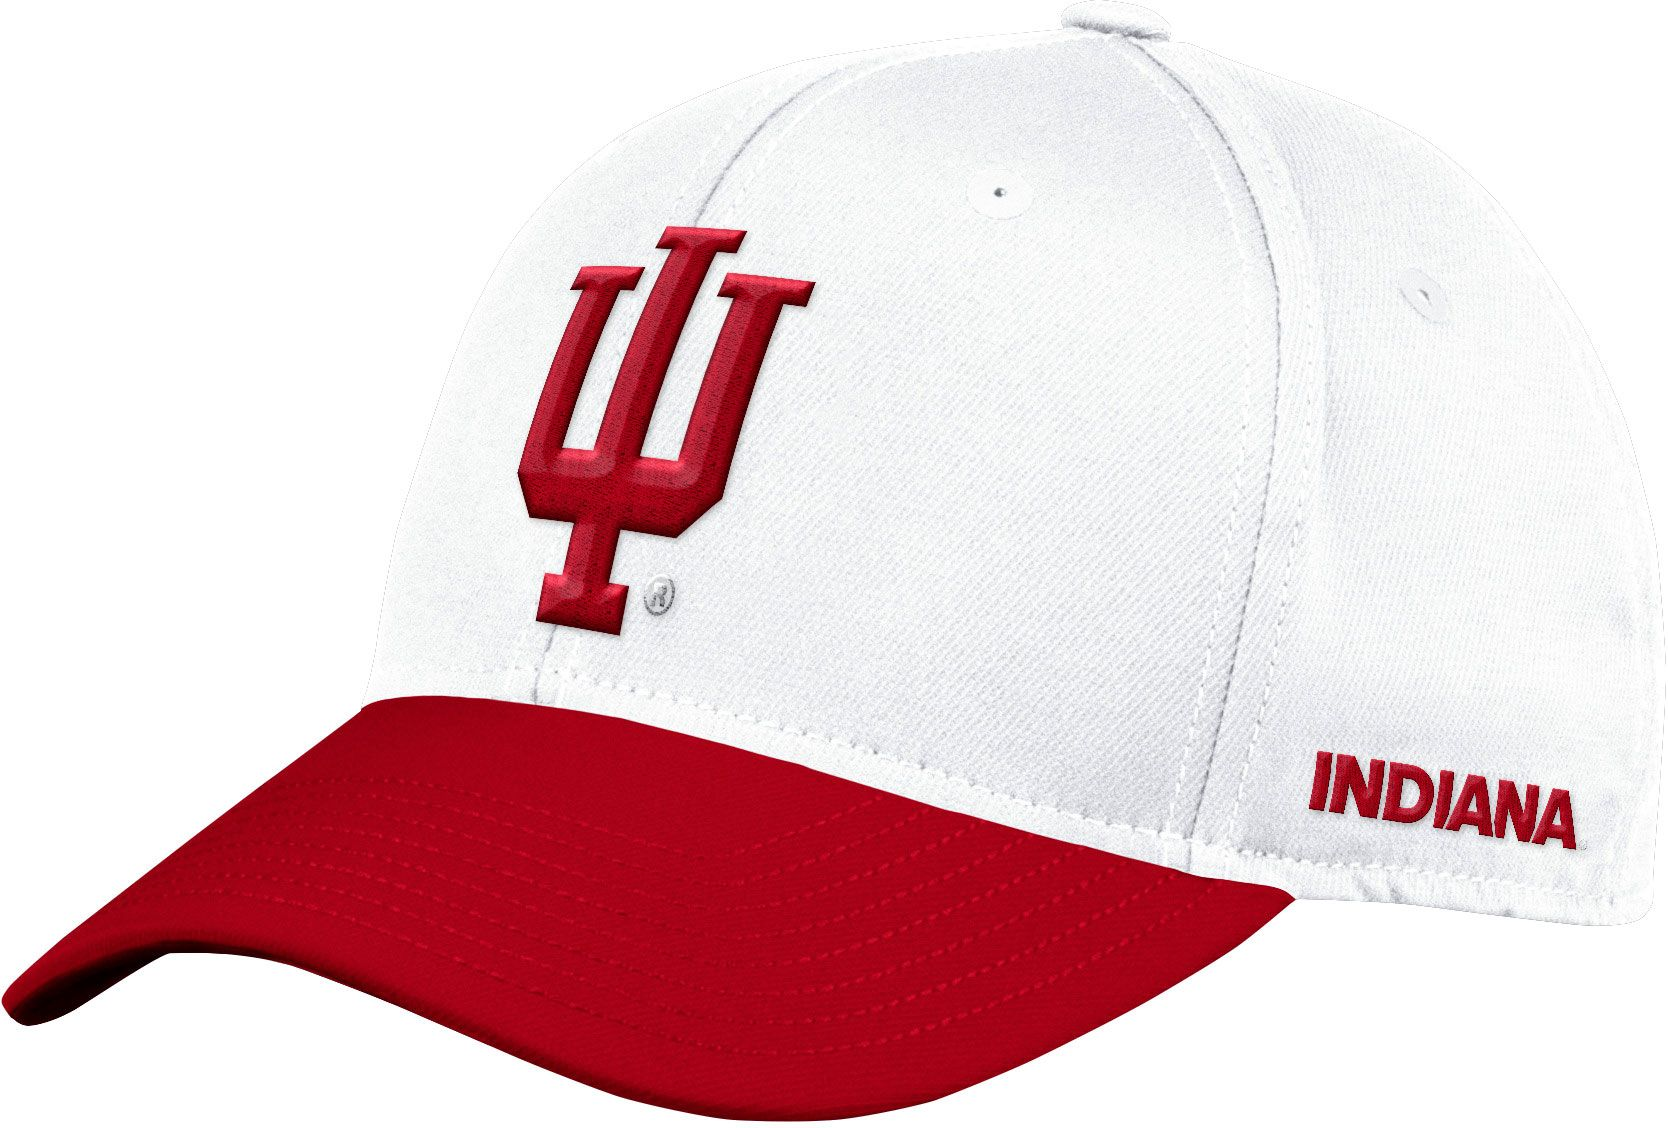 4463b3fa0a7d3 closeout adidas mens indiana hoosiers white flex football sideline hat  eefe6 0d824